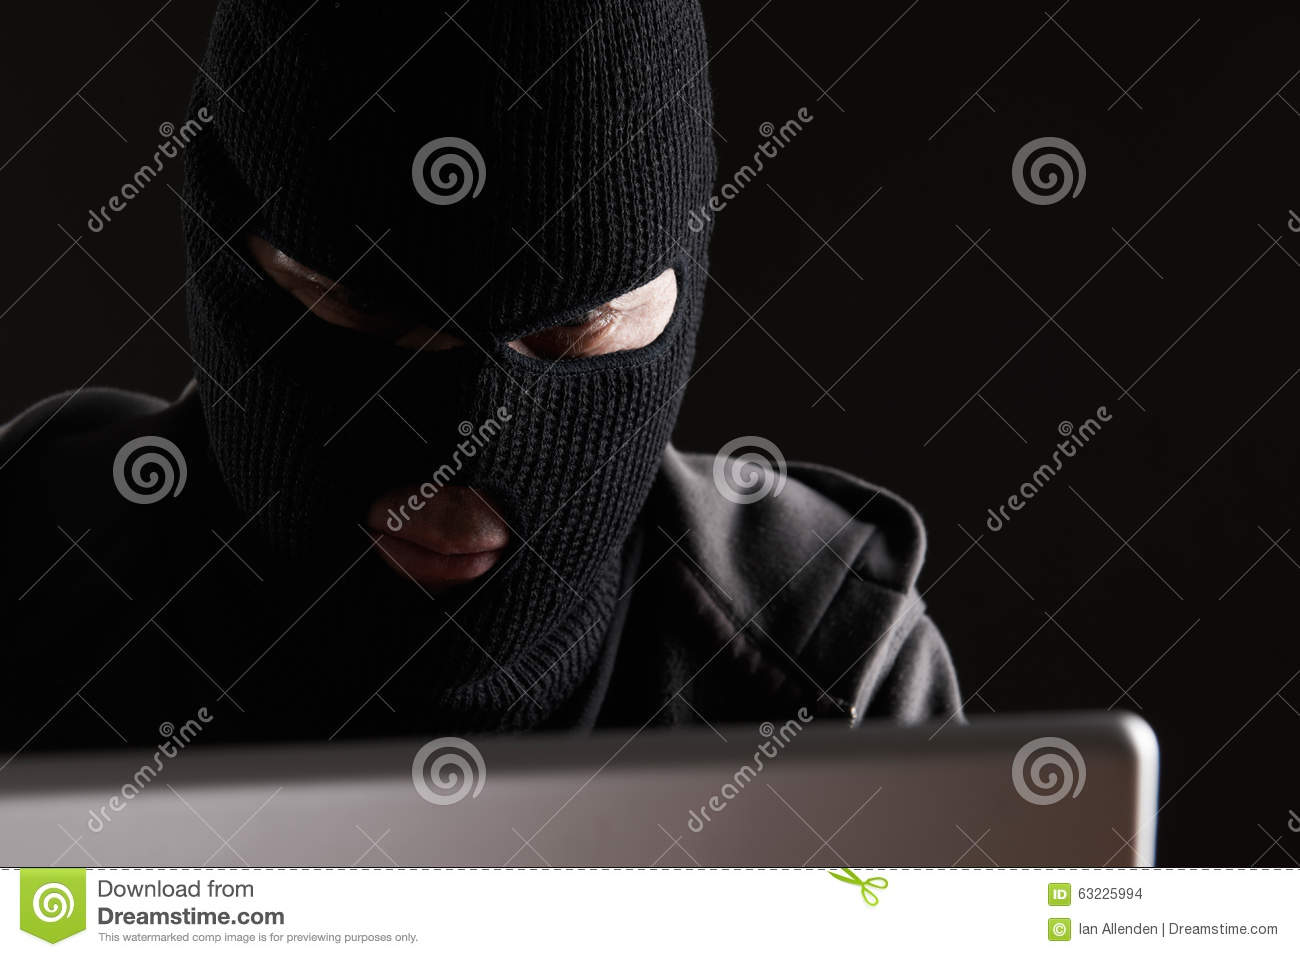 a description of a hacker as one who accesses a computer Understand how this virus or malware spreads and how its payloads affects your computer  servers to allow a hacker to  accesses data sources across.